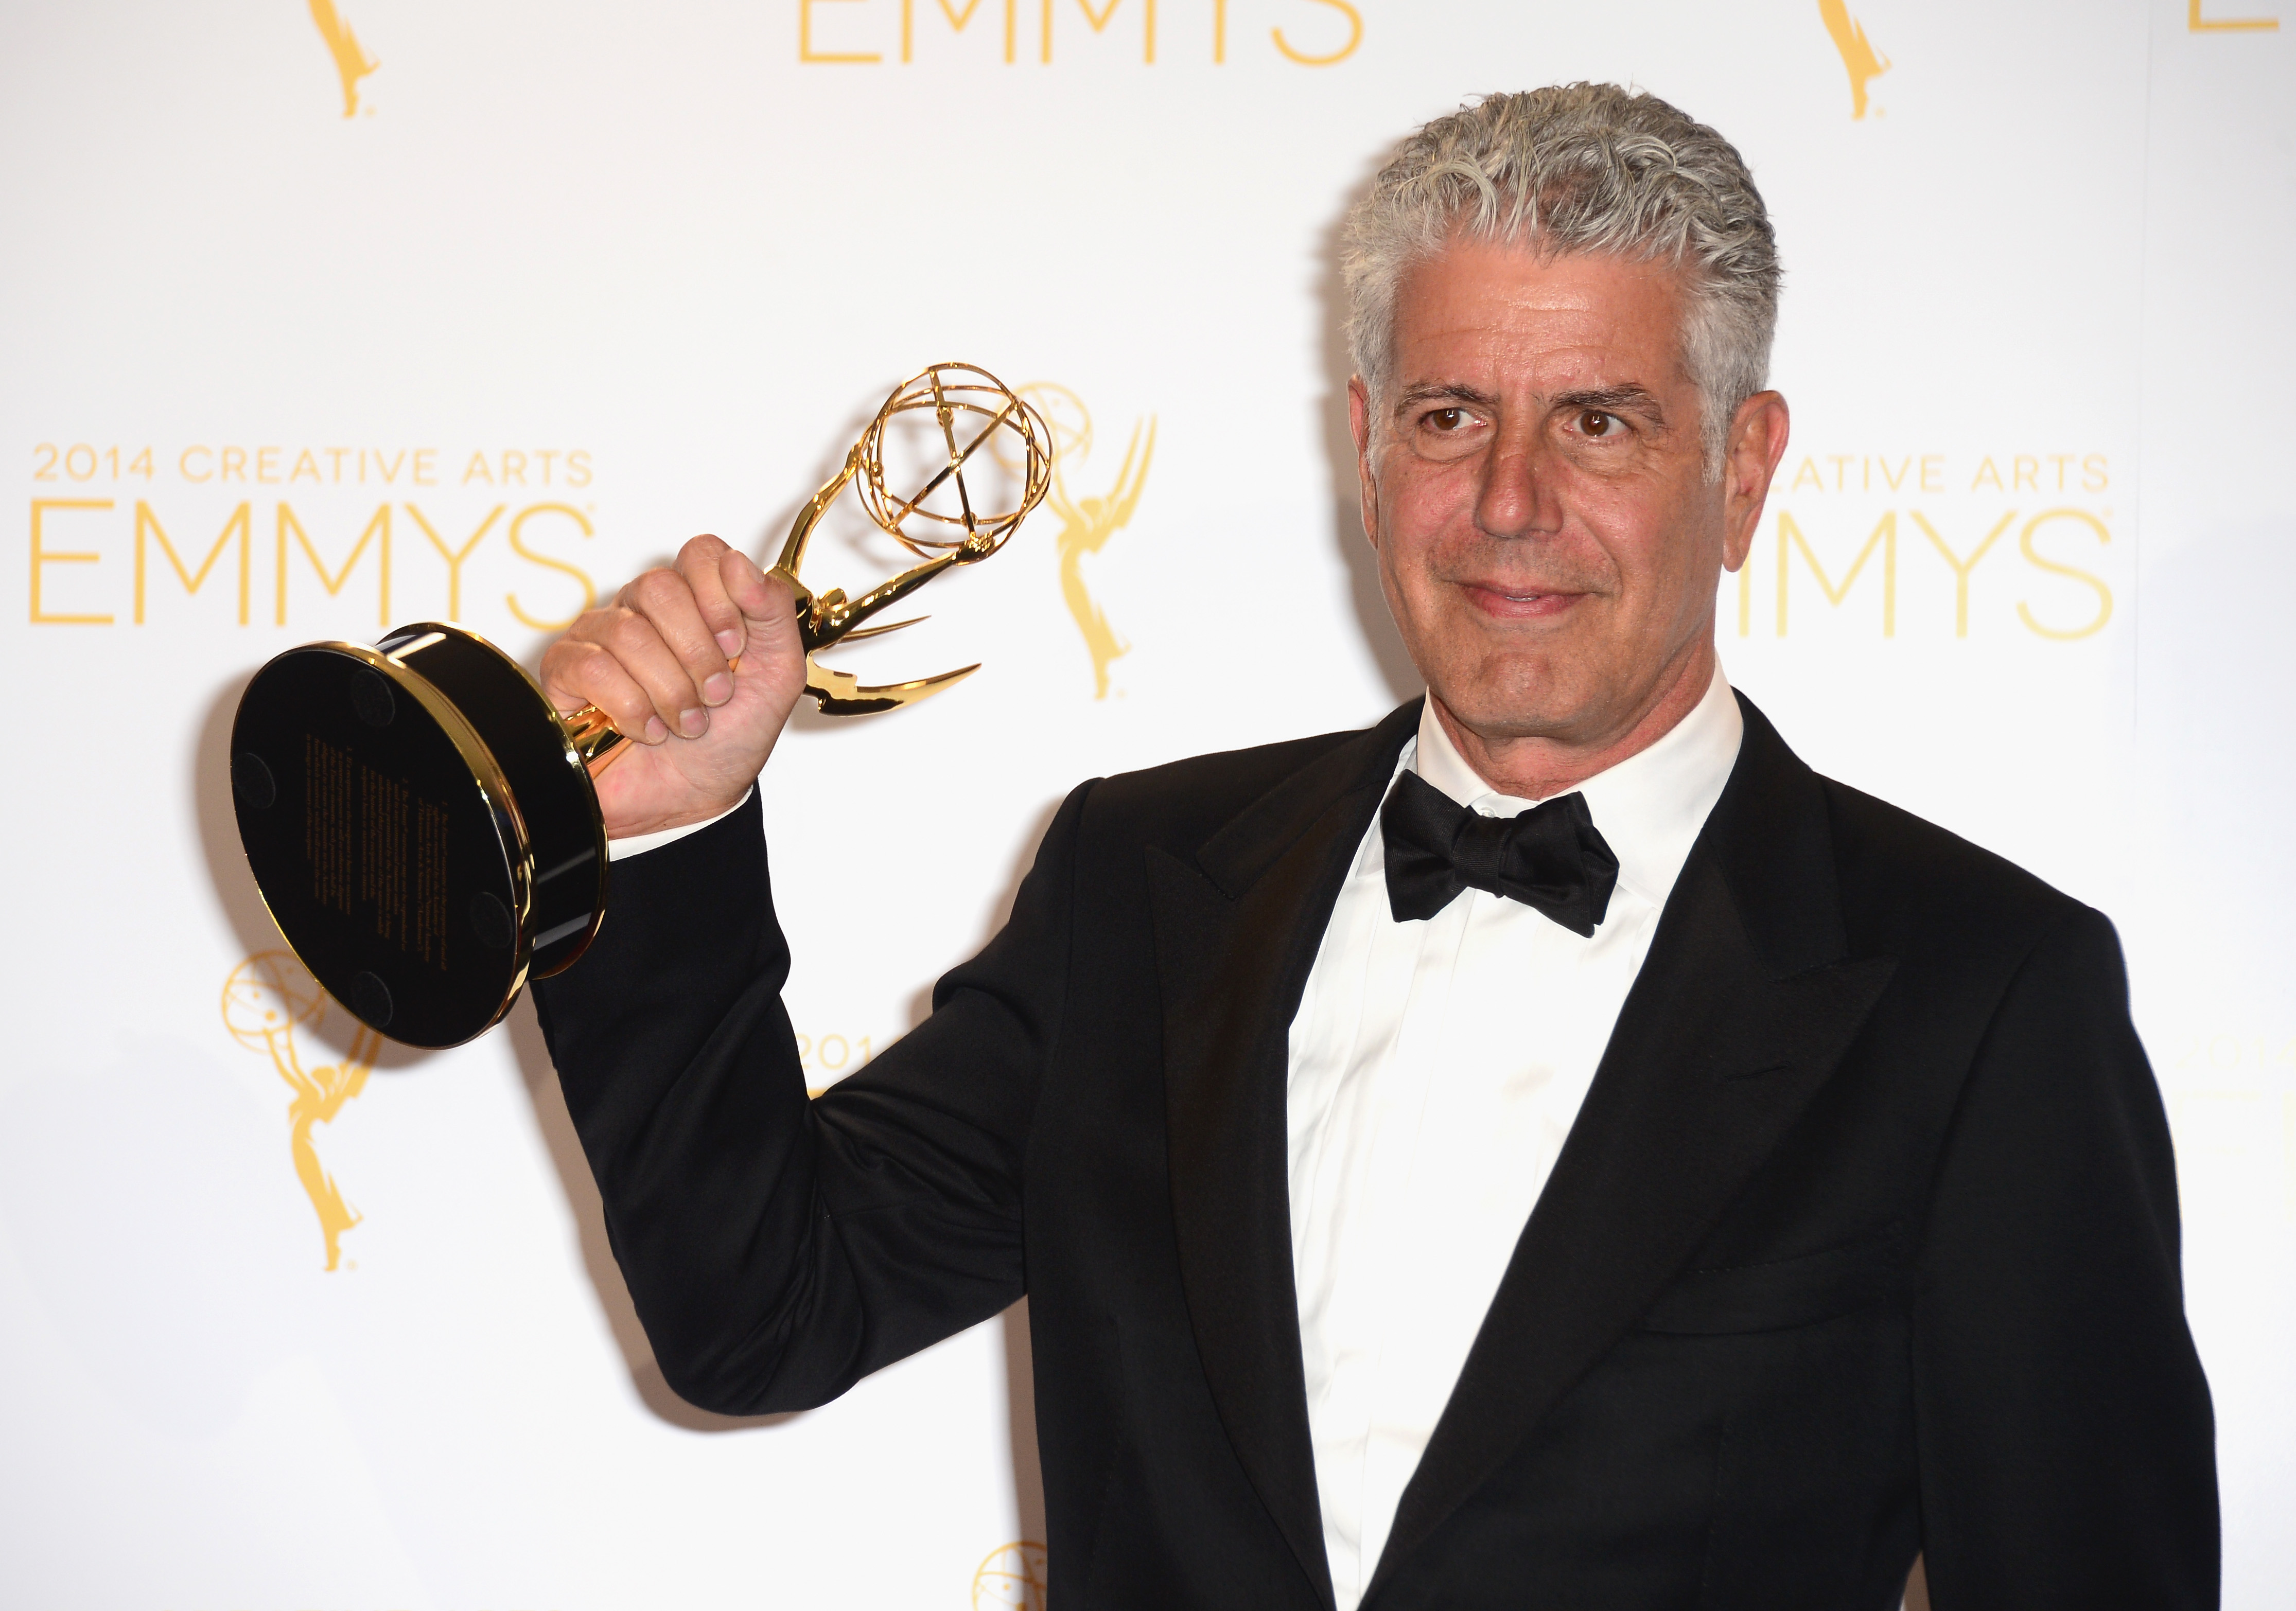 Remembering How Anthony Bourdain Advocated for Latinos